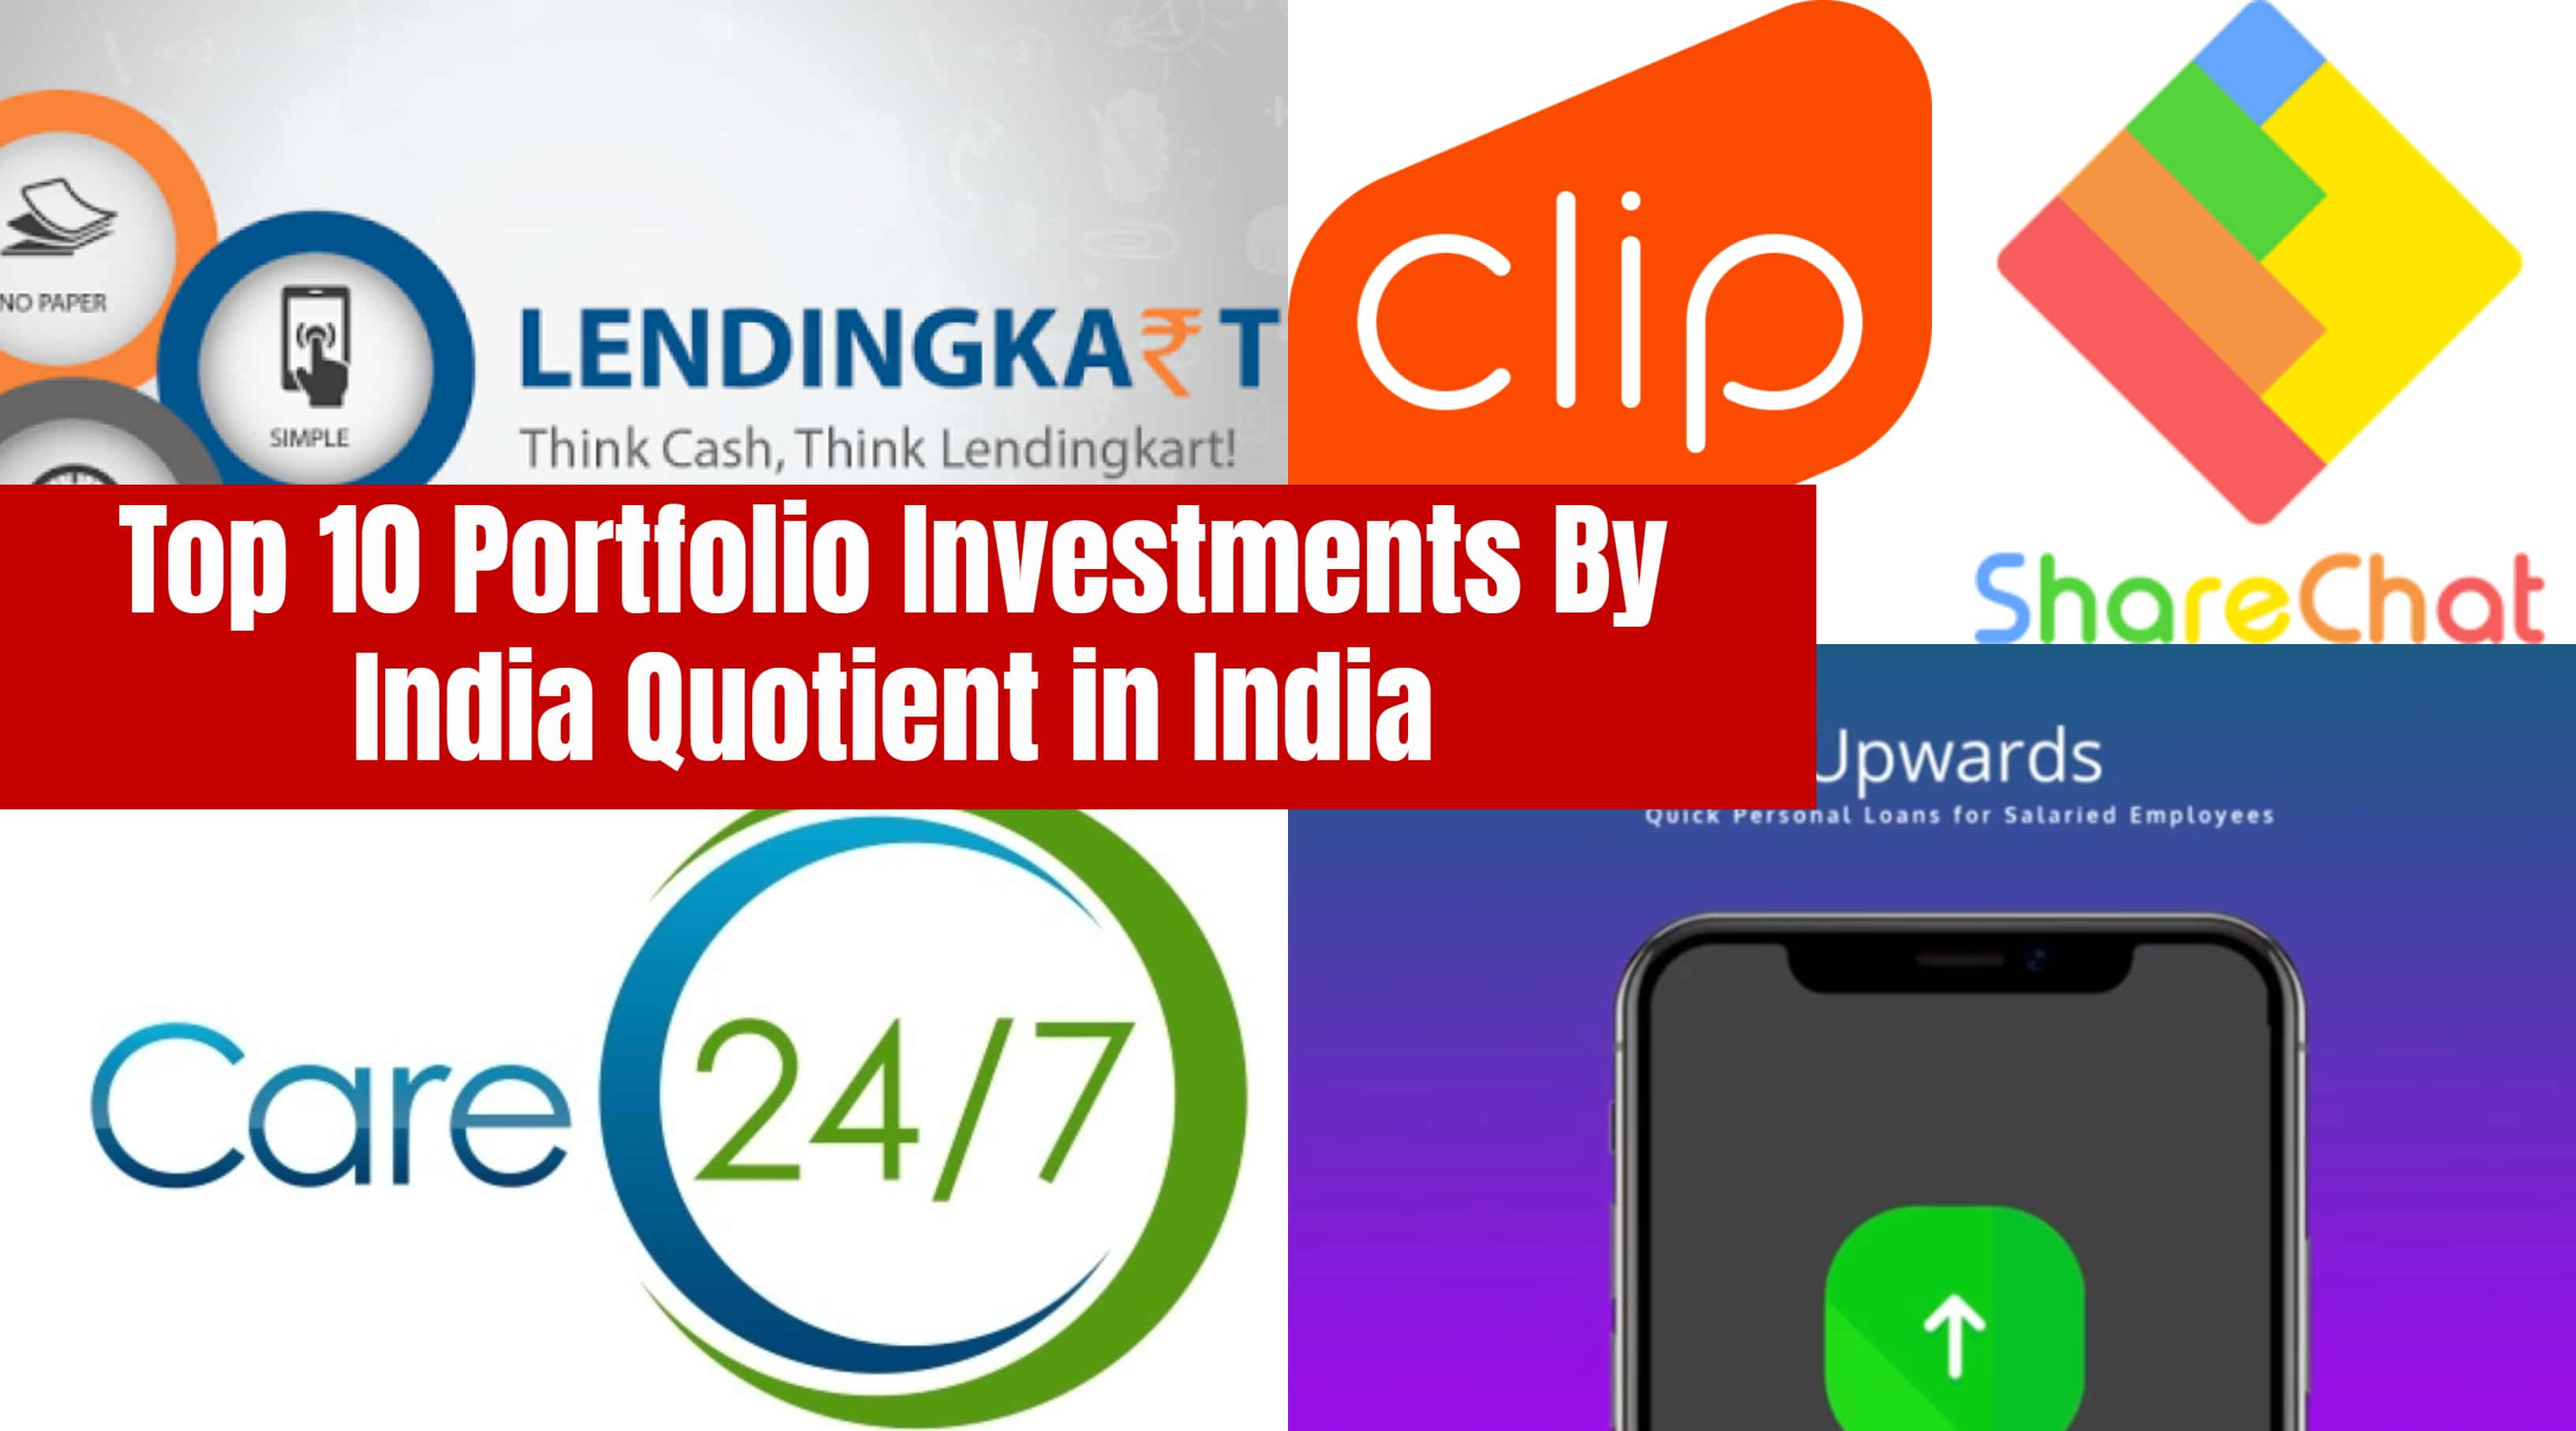 Top 10 Portfolio Investments By India Quotient in India